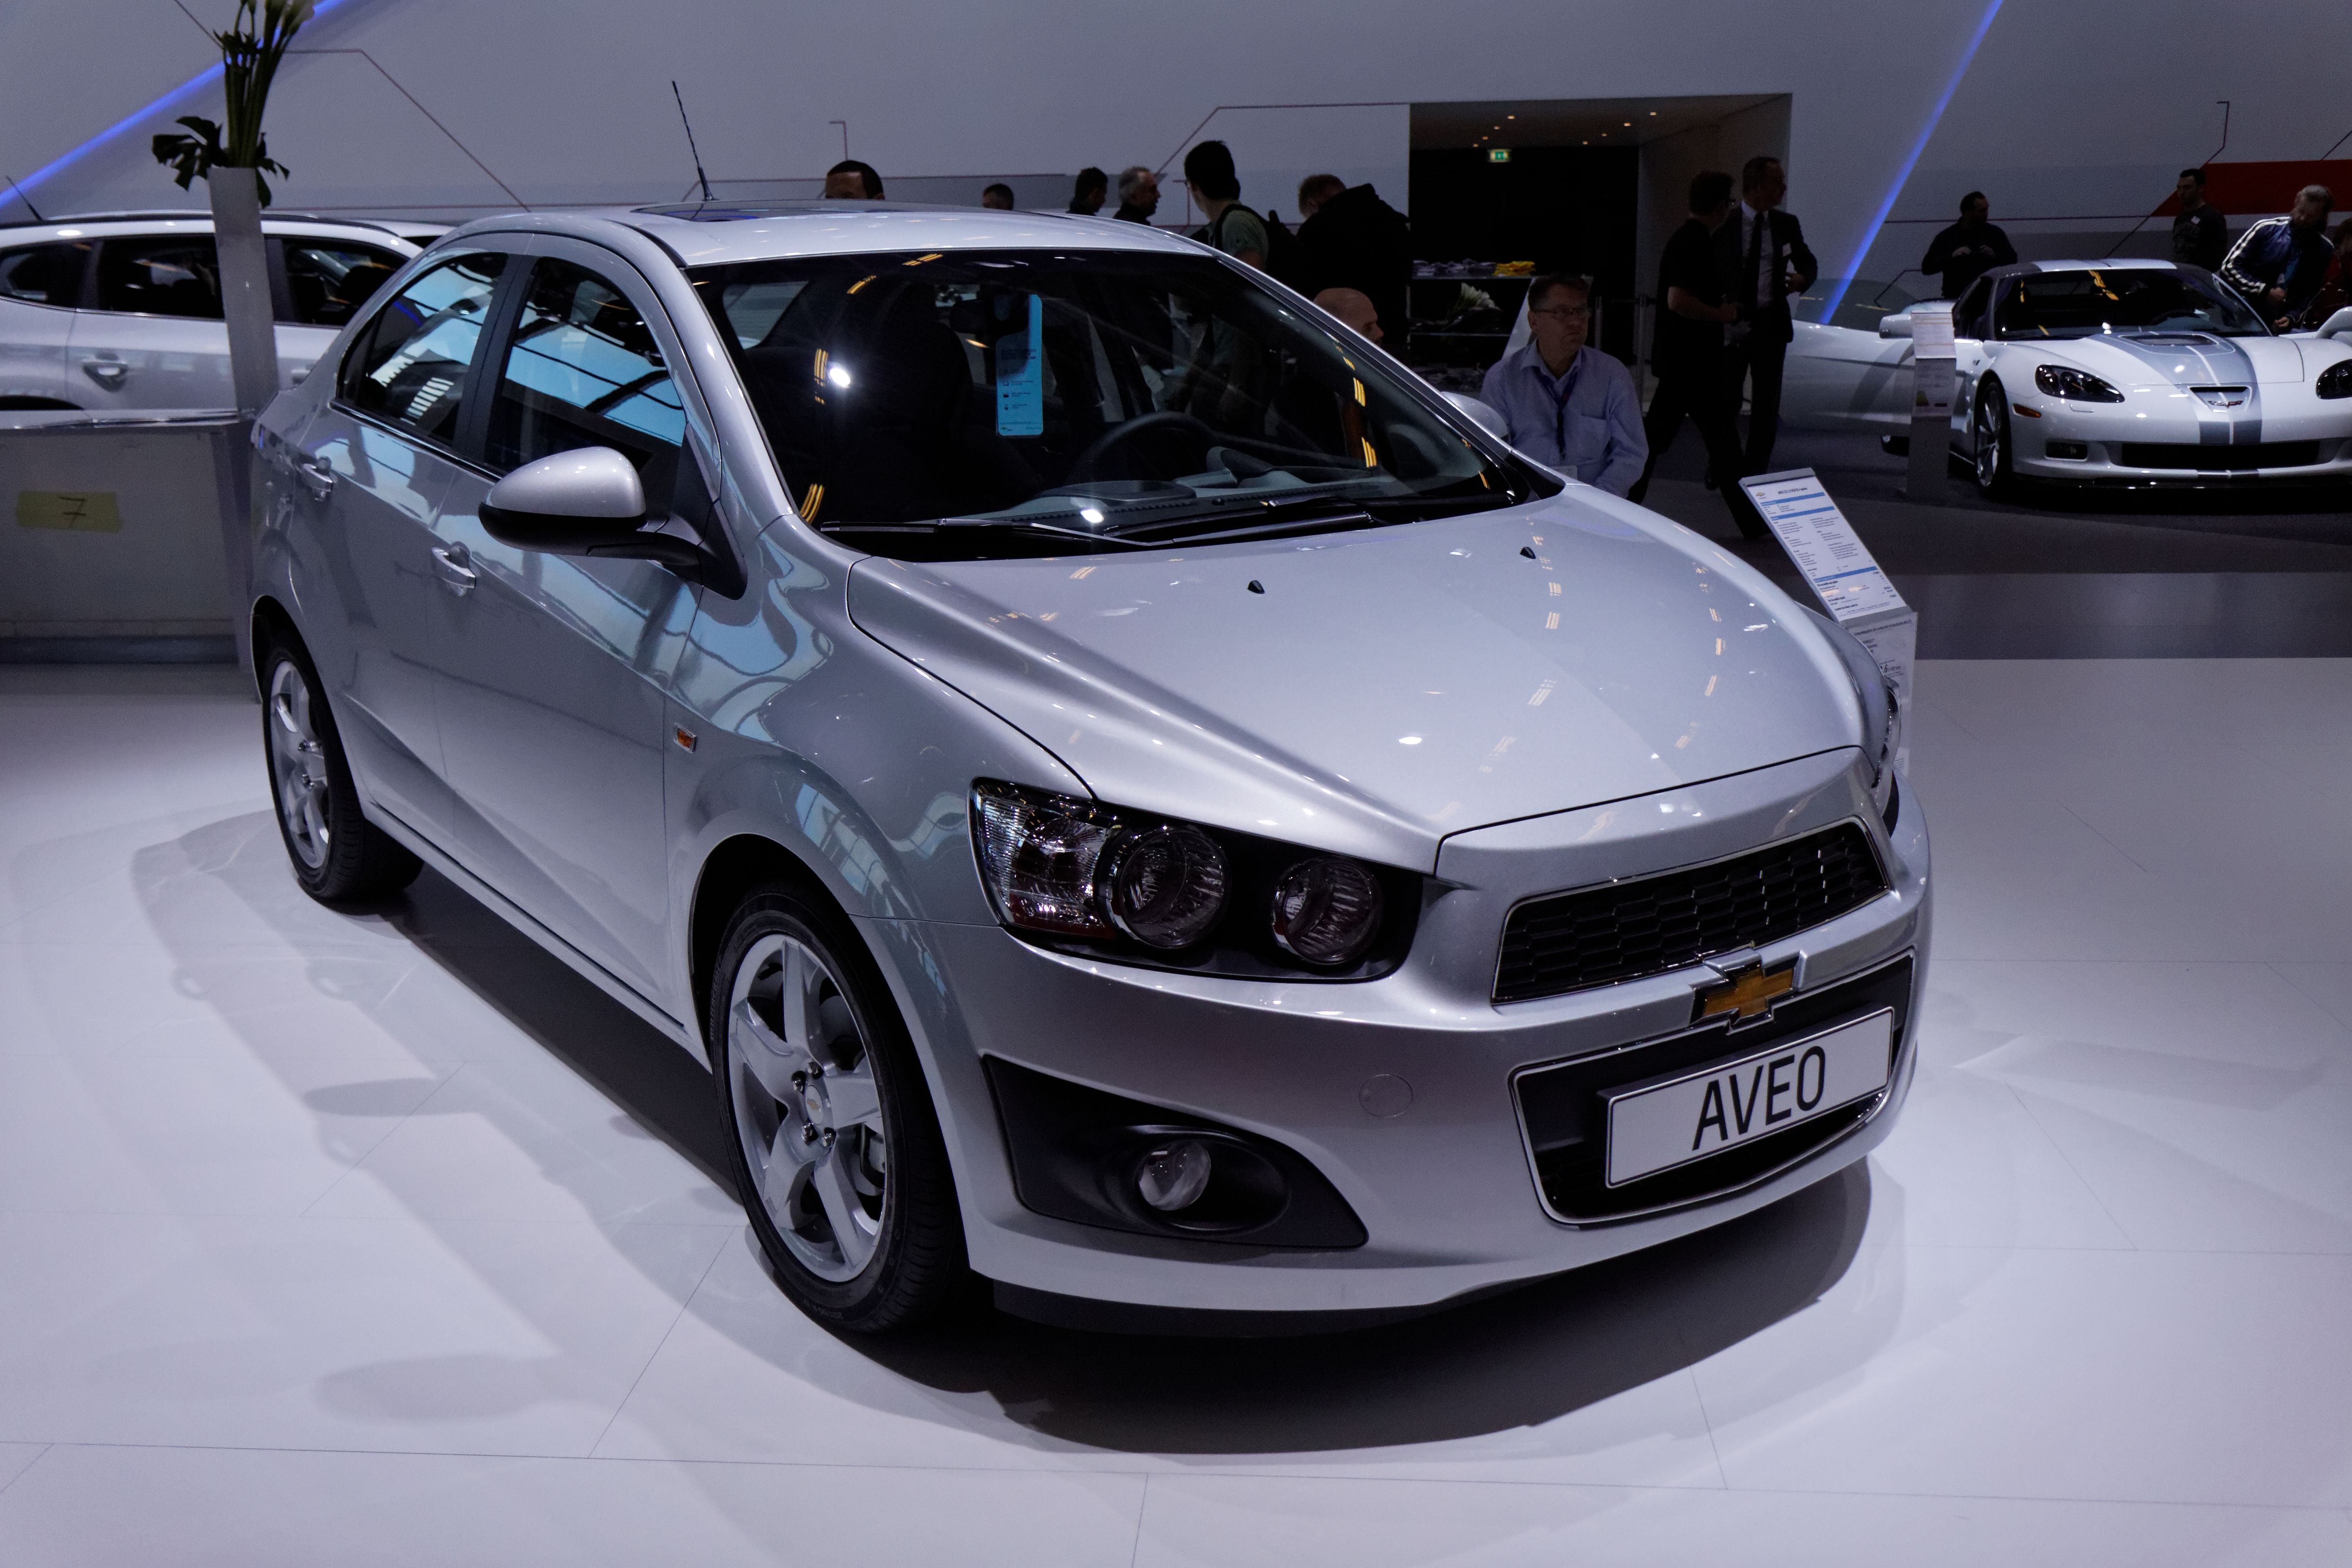 file chevrolet aveo mondial de l 39 automobile de paris 2012 wikimedia commons. Black Bedroom Furniture Sets. Home Design Ideas